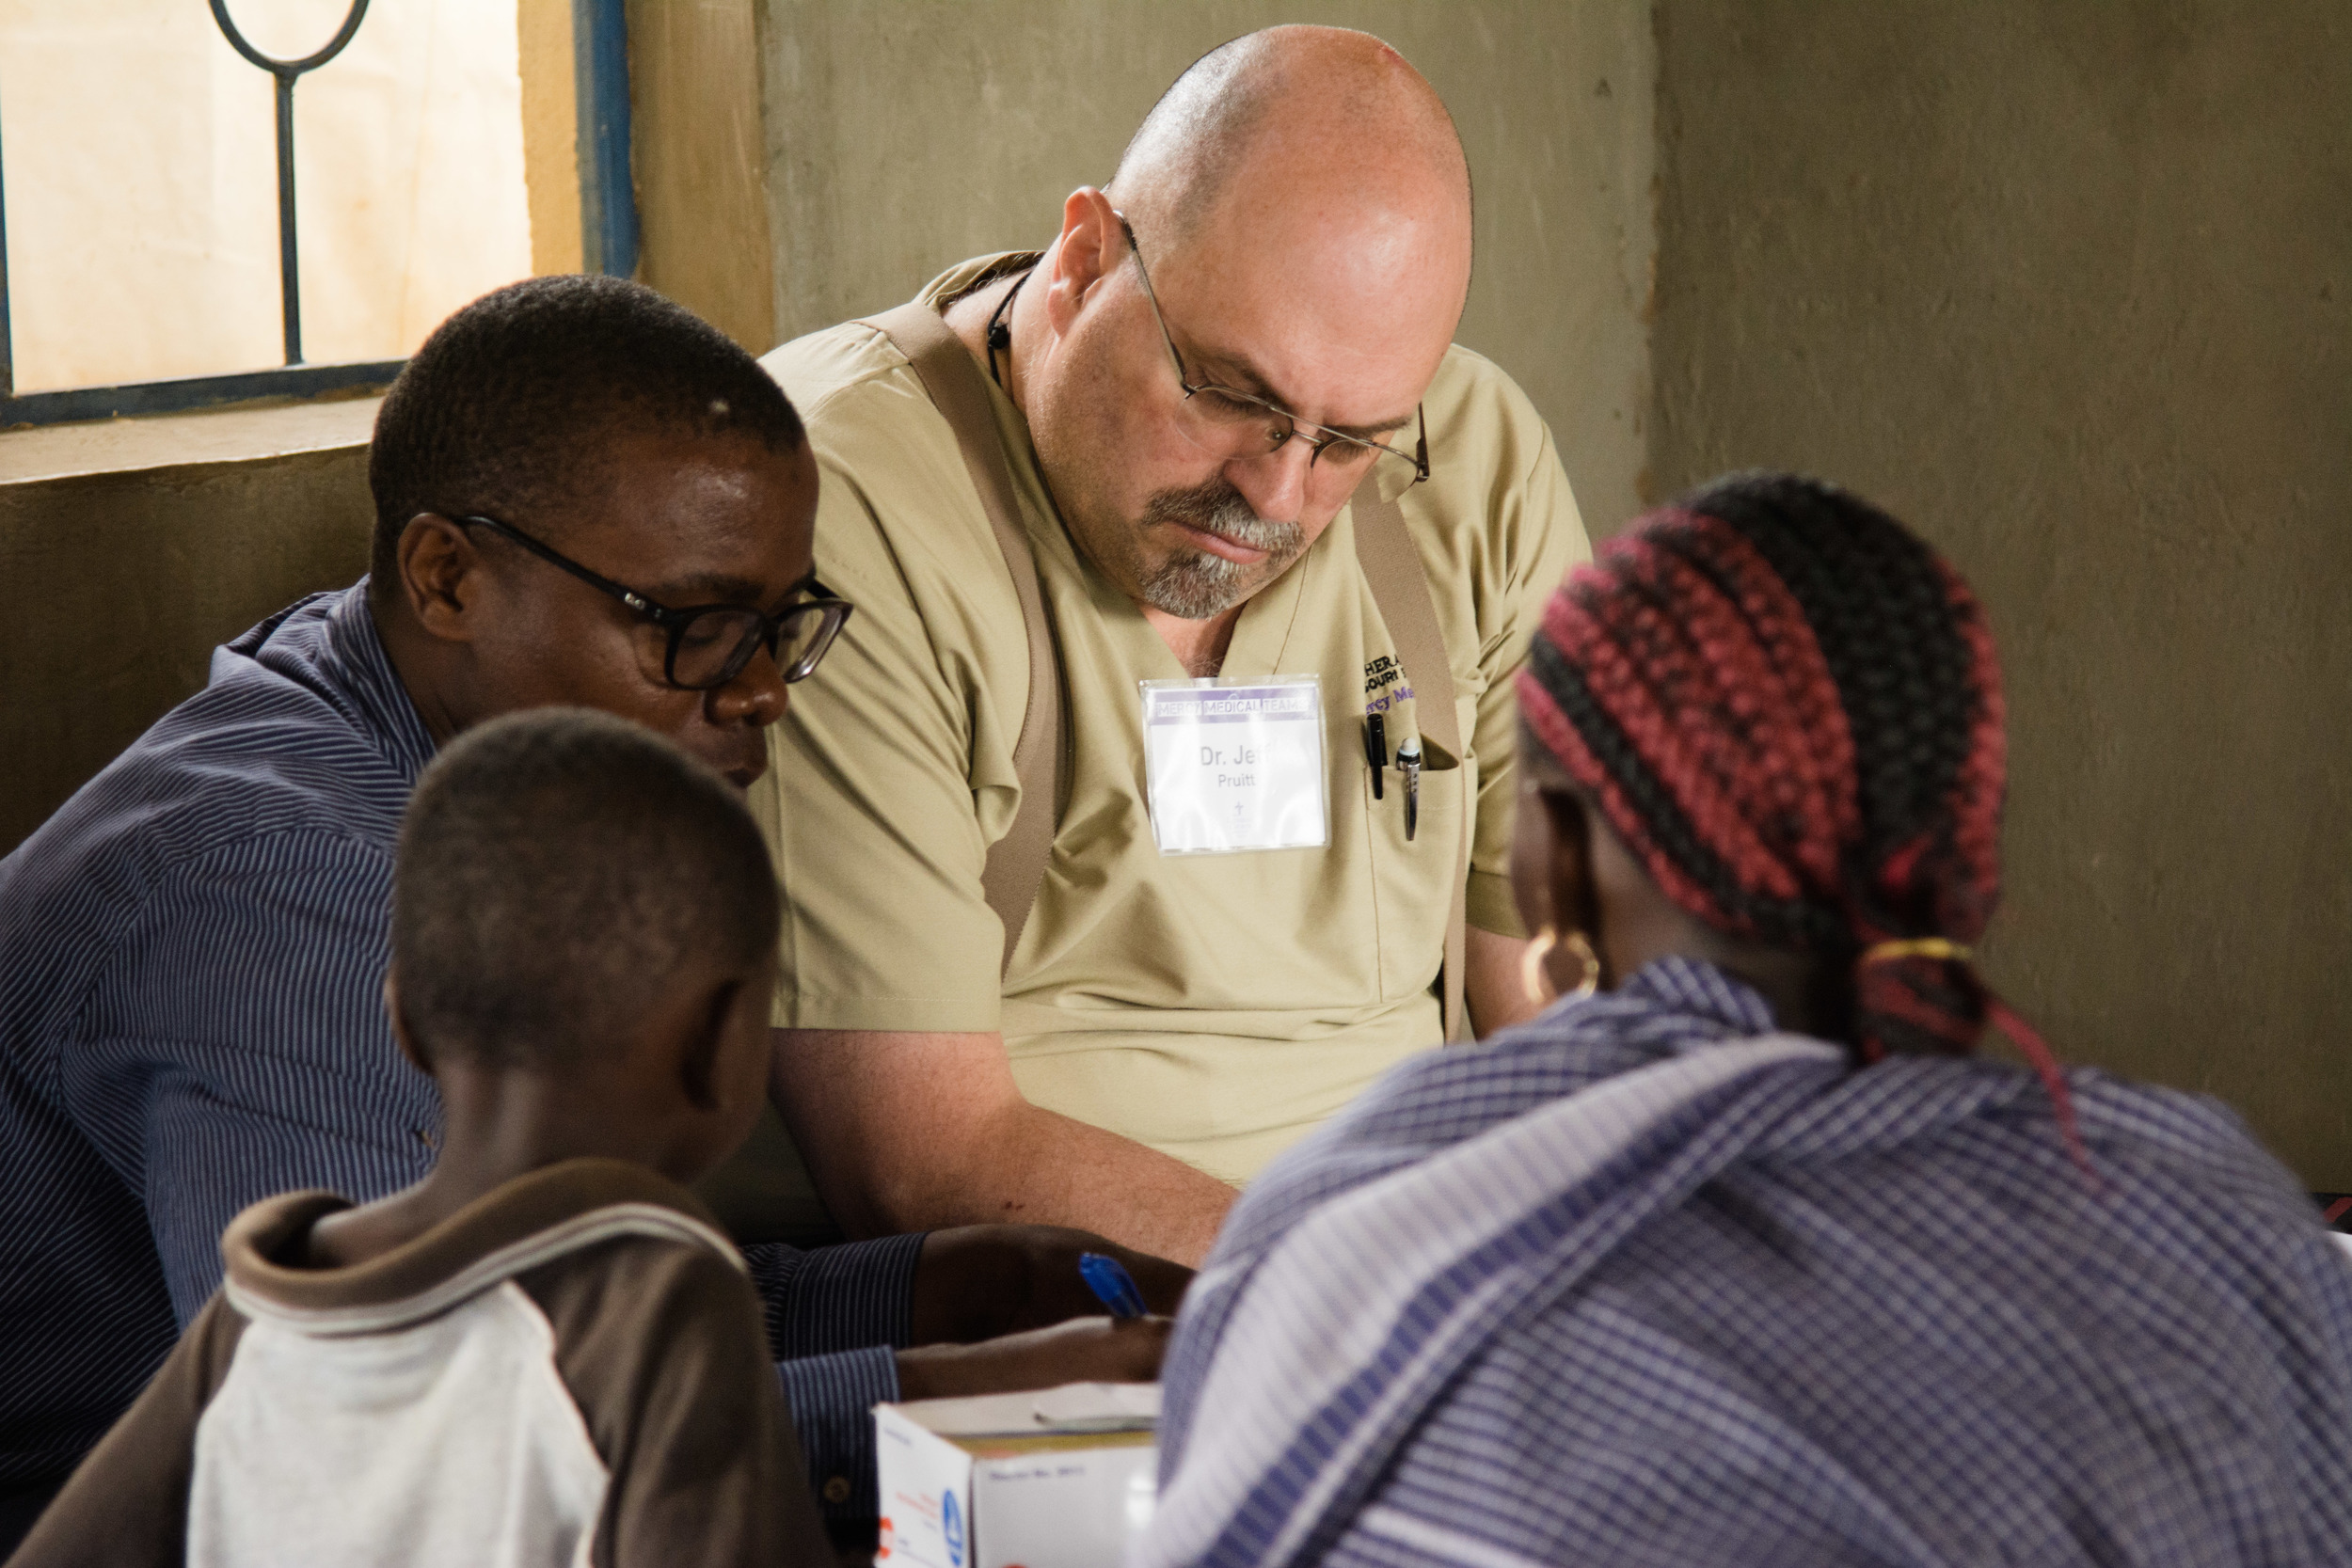 Dr.Jeff Pruitt from Ohio works with his Kenyan counterpart to treat a patient.